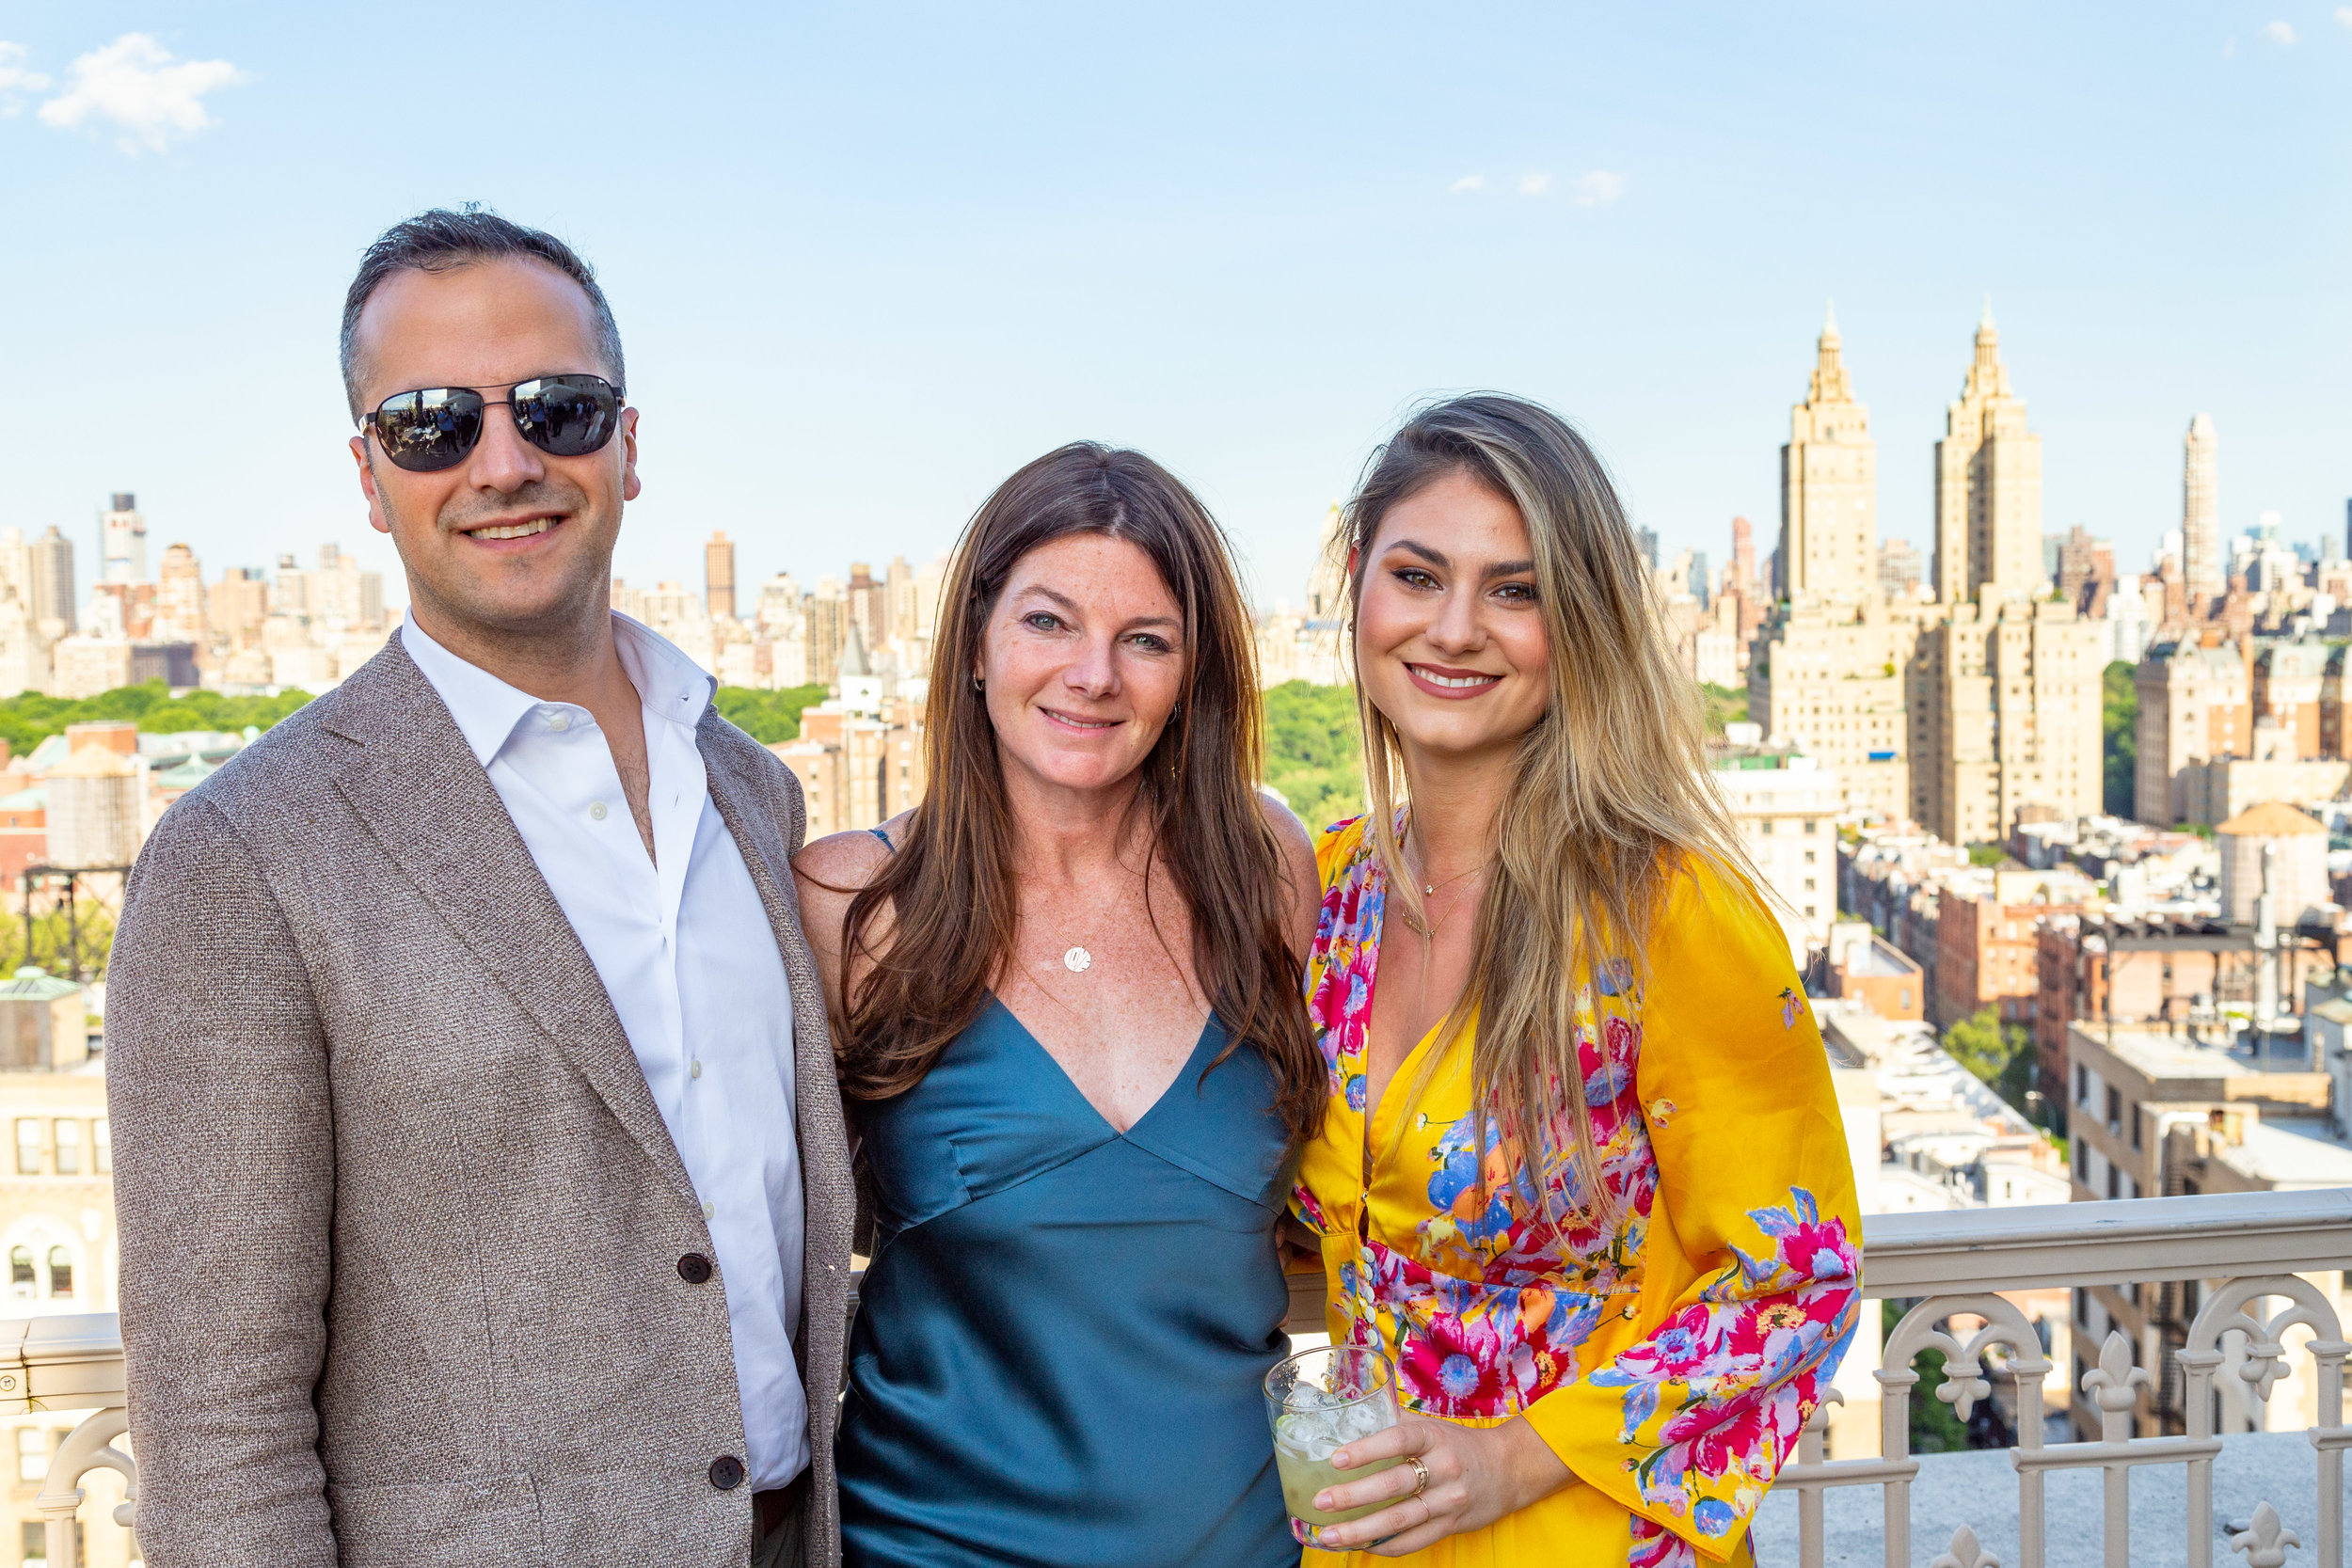 Jason Naggiar, Jennifer Kalish and Renee Micheli of Douglas Elliman